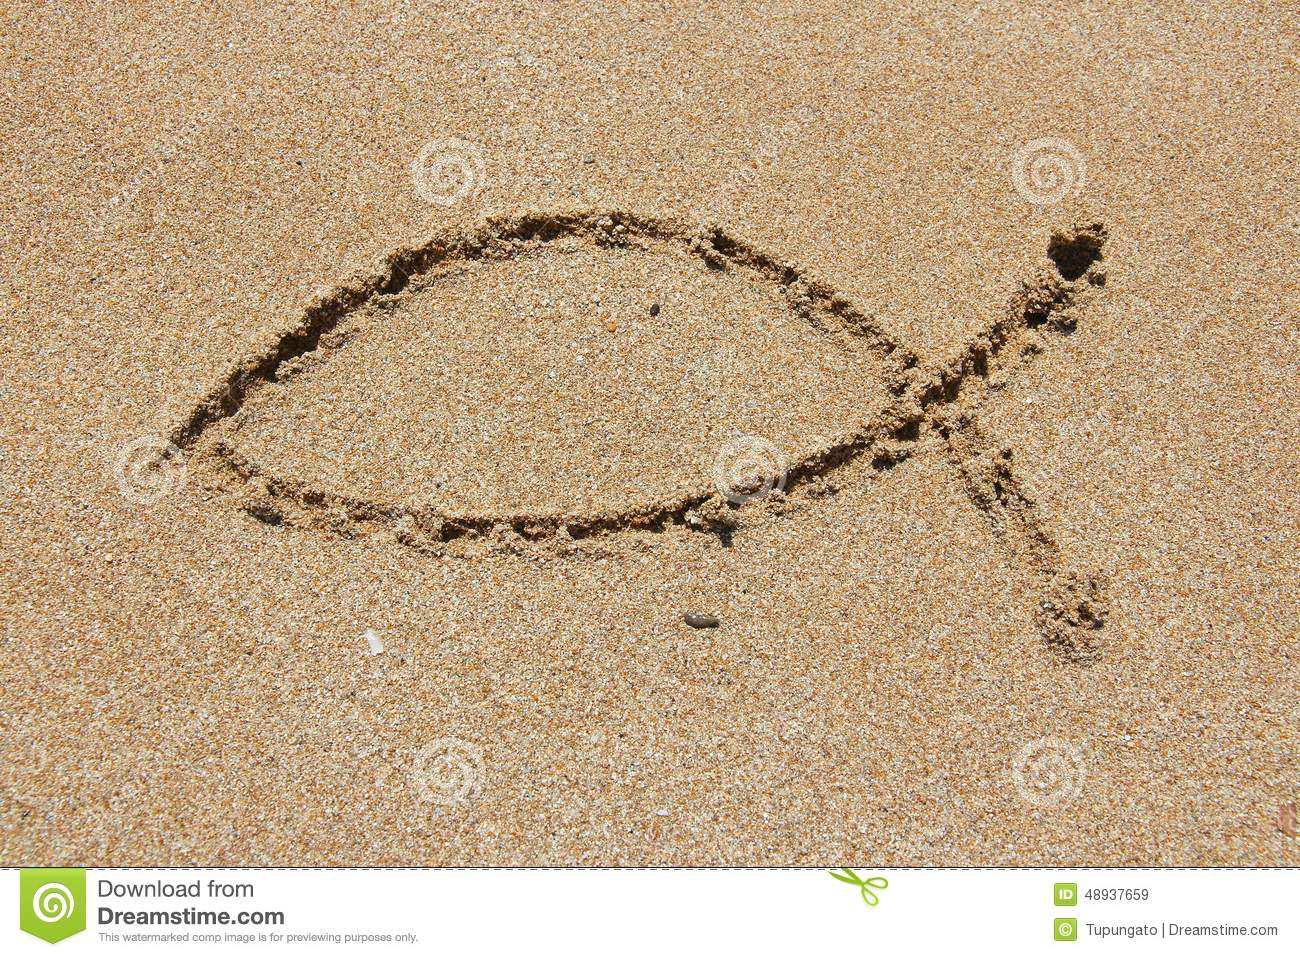 Christian fish stock images 481 photos christianity fish christianity symbol religious shape drawn in sand catholicism fish ichthus biocorpaavc